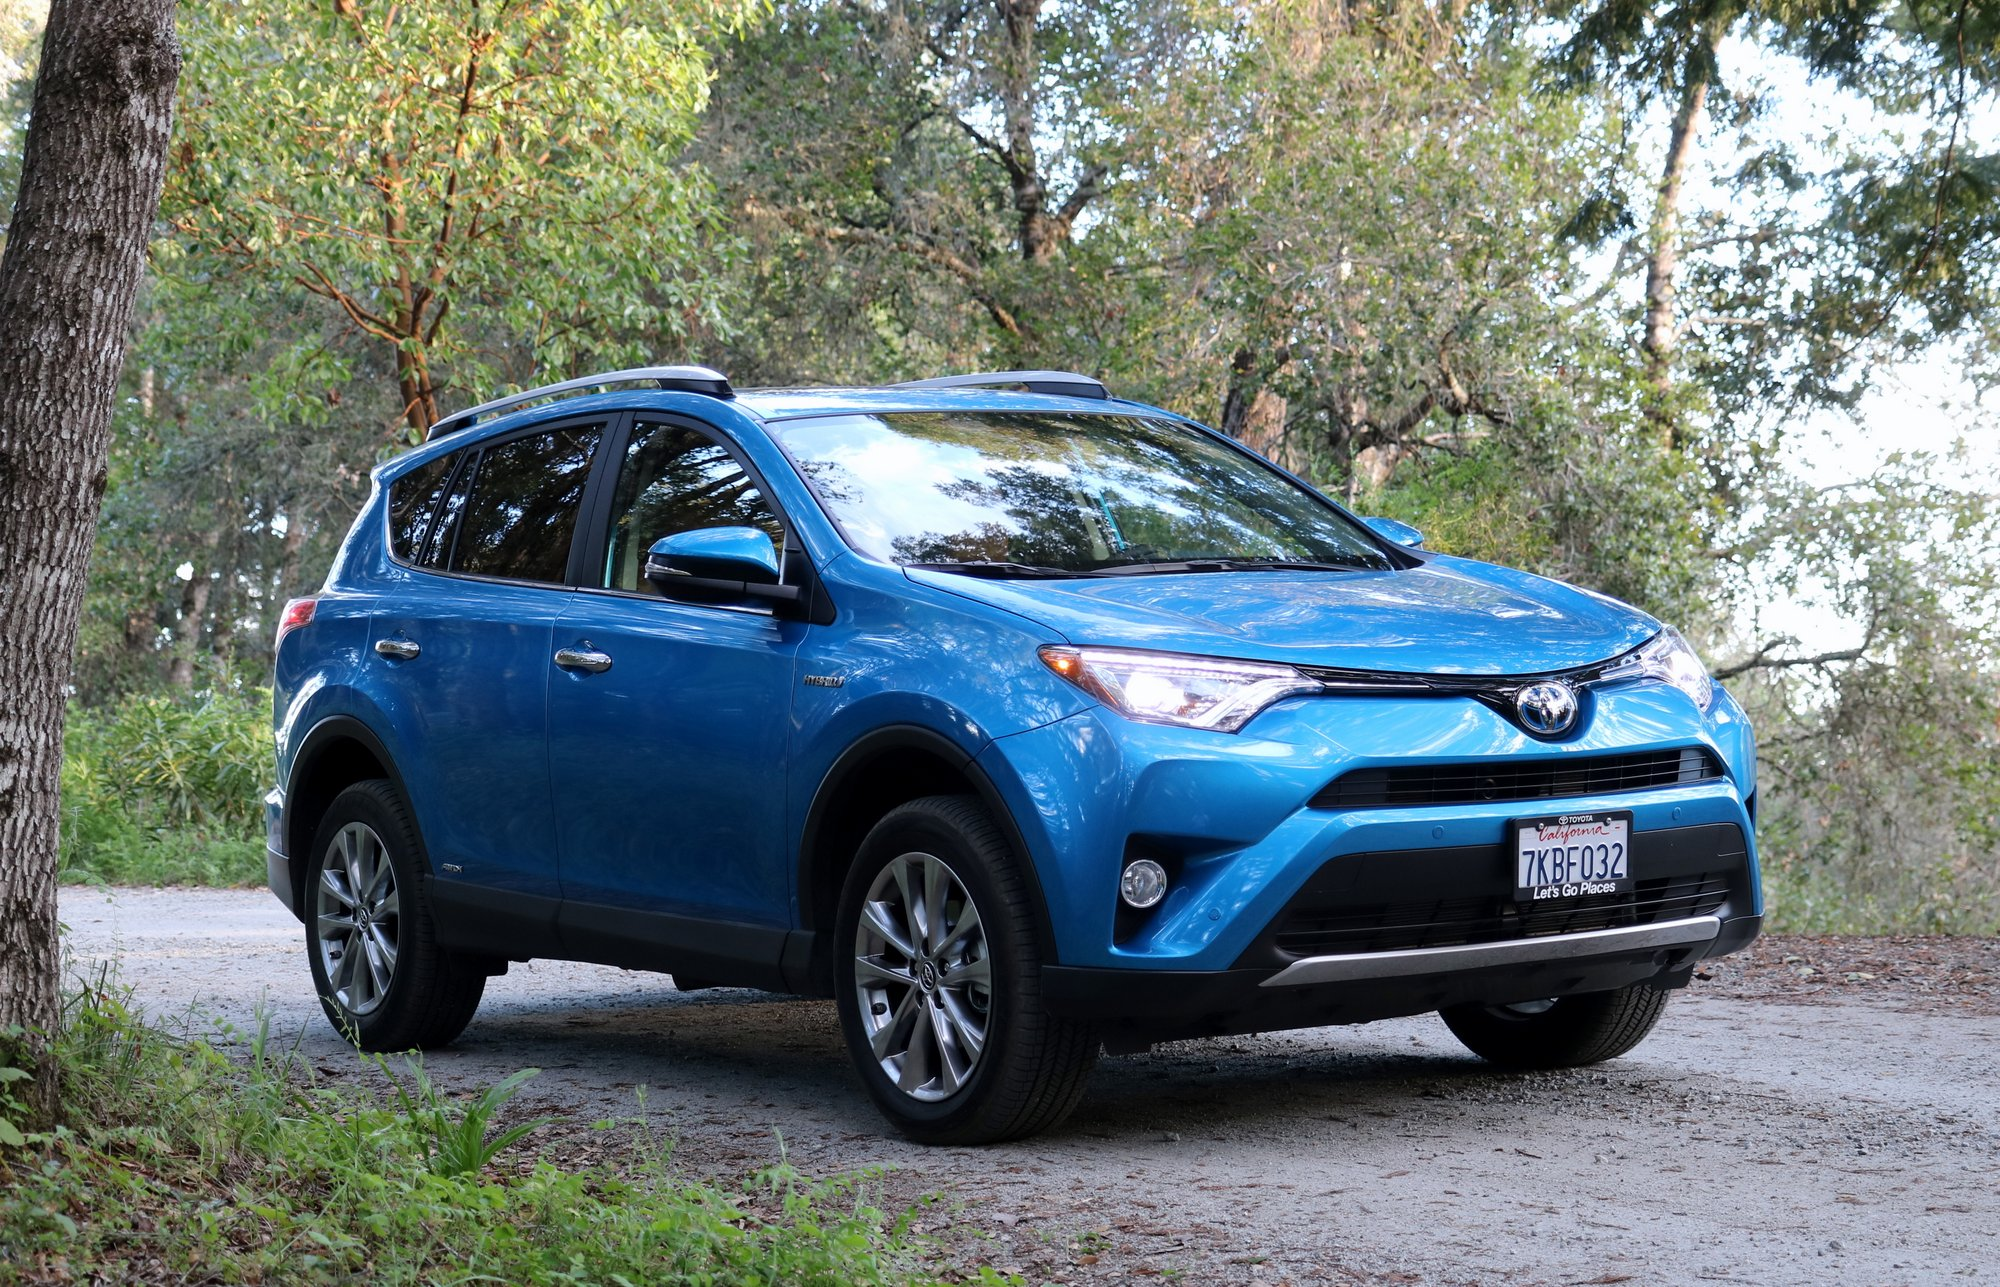 rav4 gas mileage 2018 2019 new car reviews by girlcodemovement. Black Bedroom Furniture Sets. Home Design Ideas